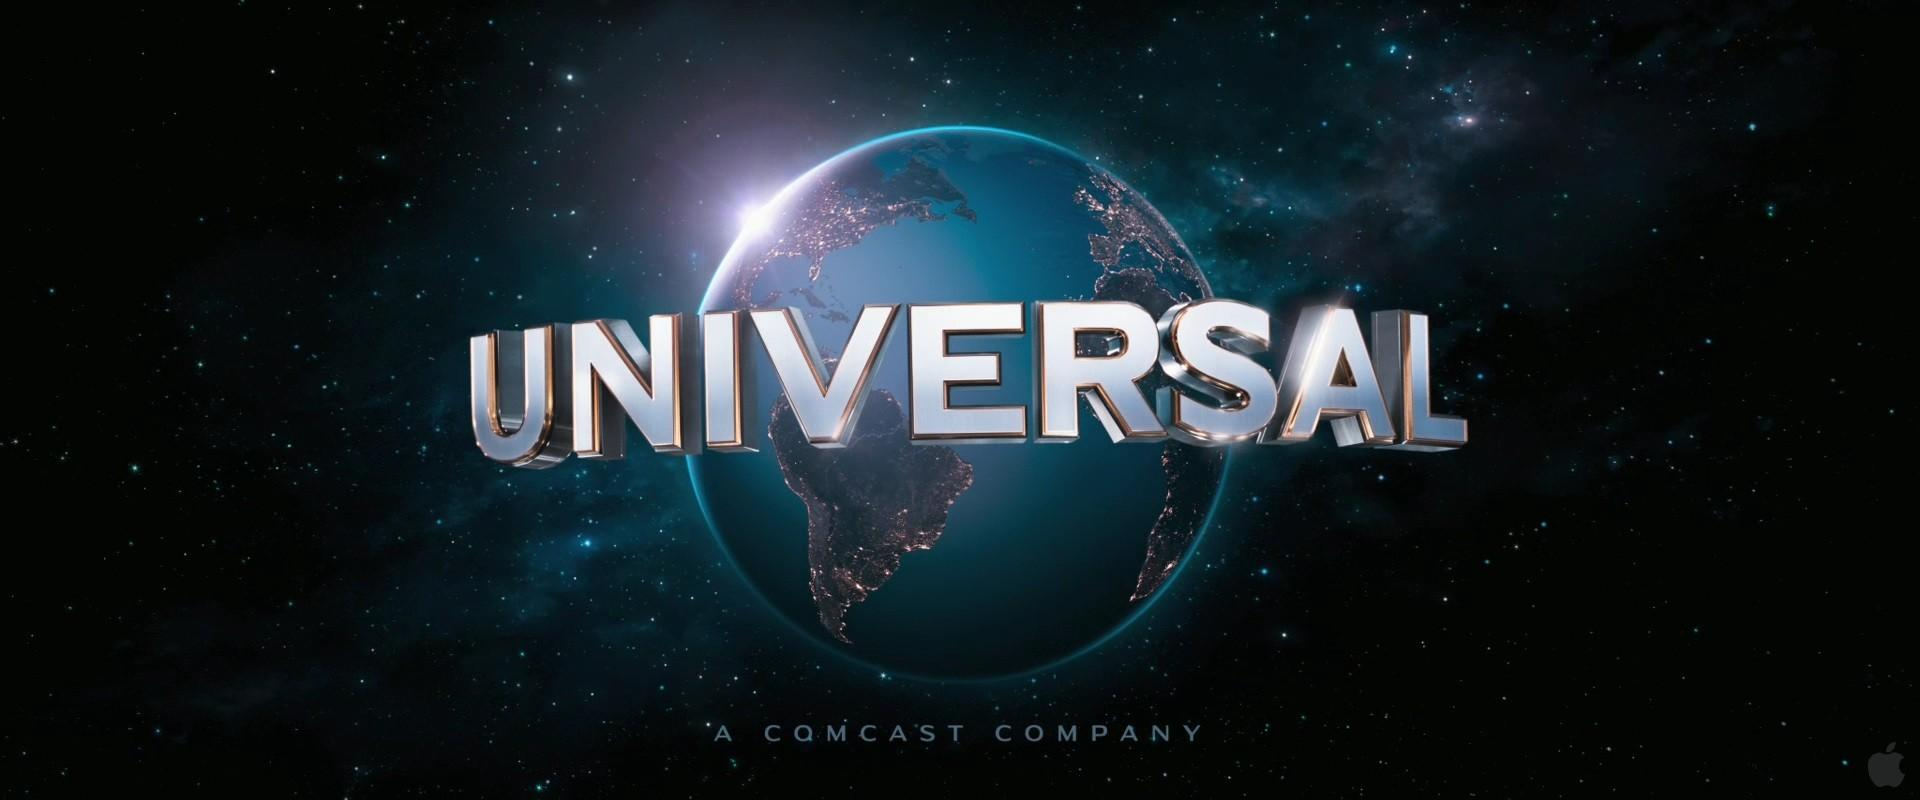 Universal Sets Another Record With Domestic Box Office Mark